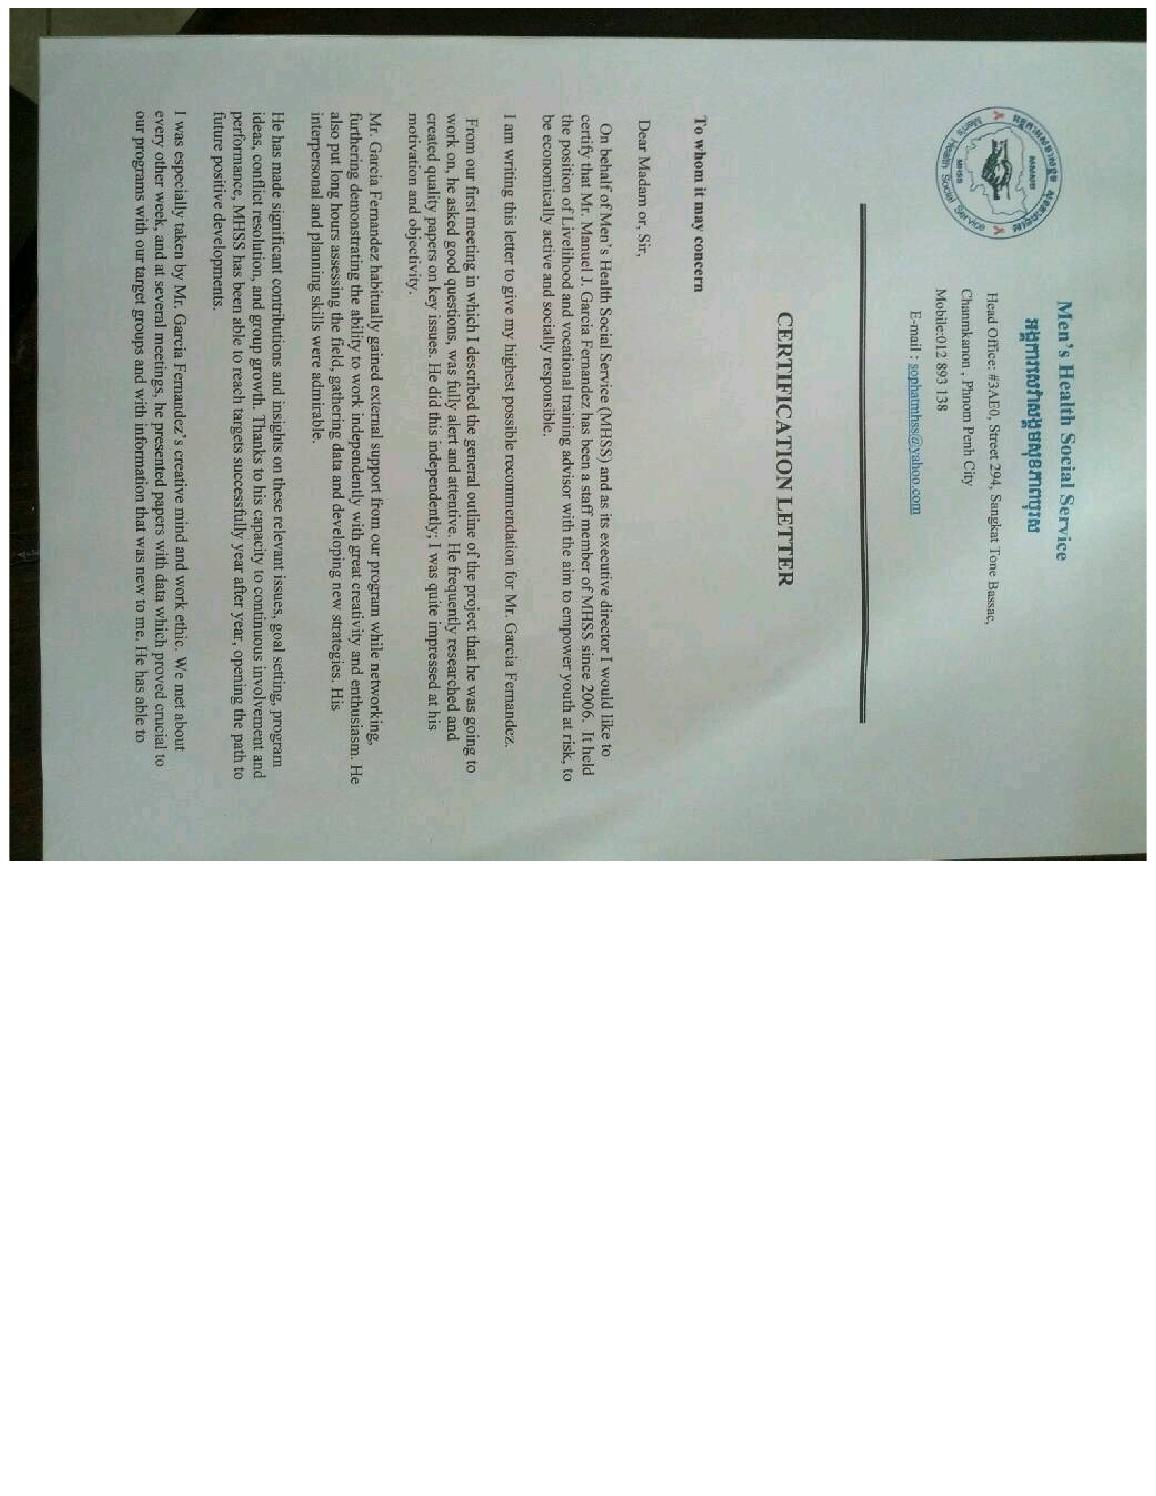 Letter Of Recommendation Mhss Org Cambodia By Manuel J Garcia Issuu